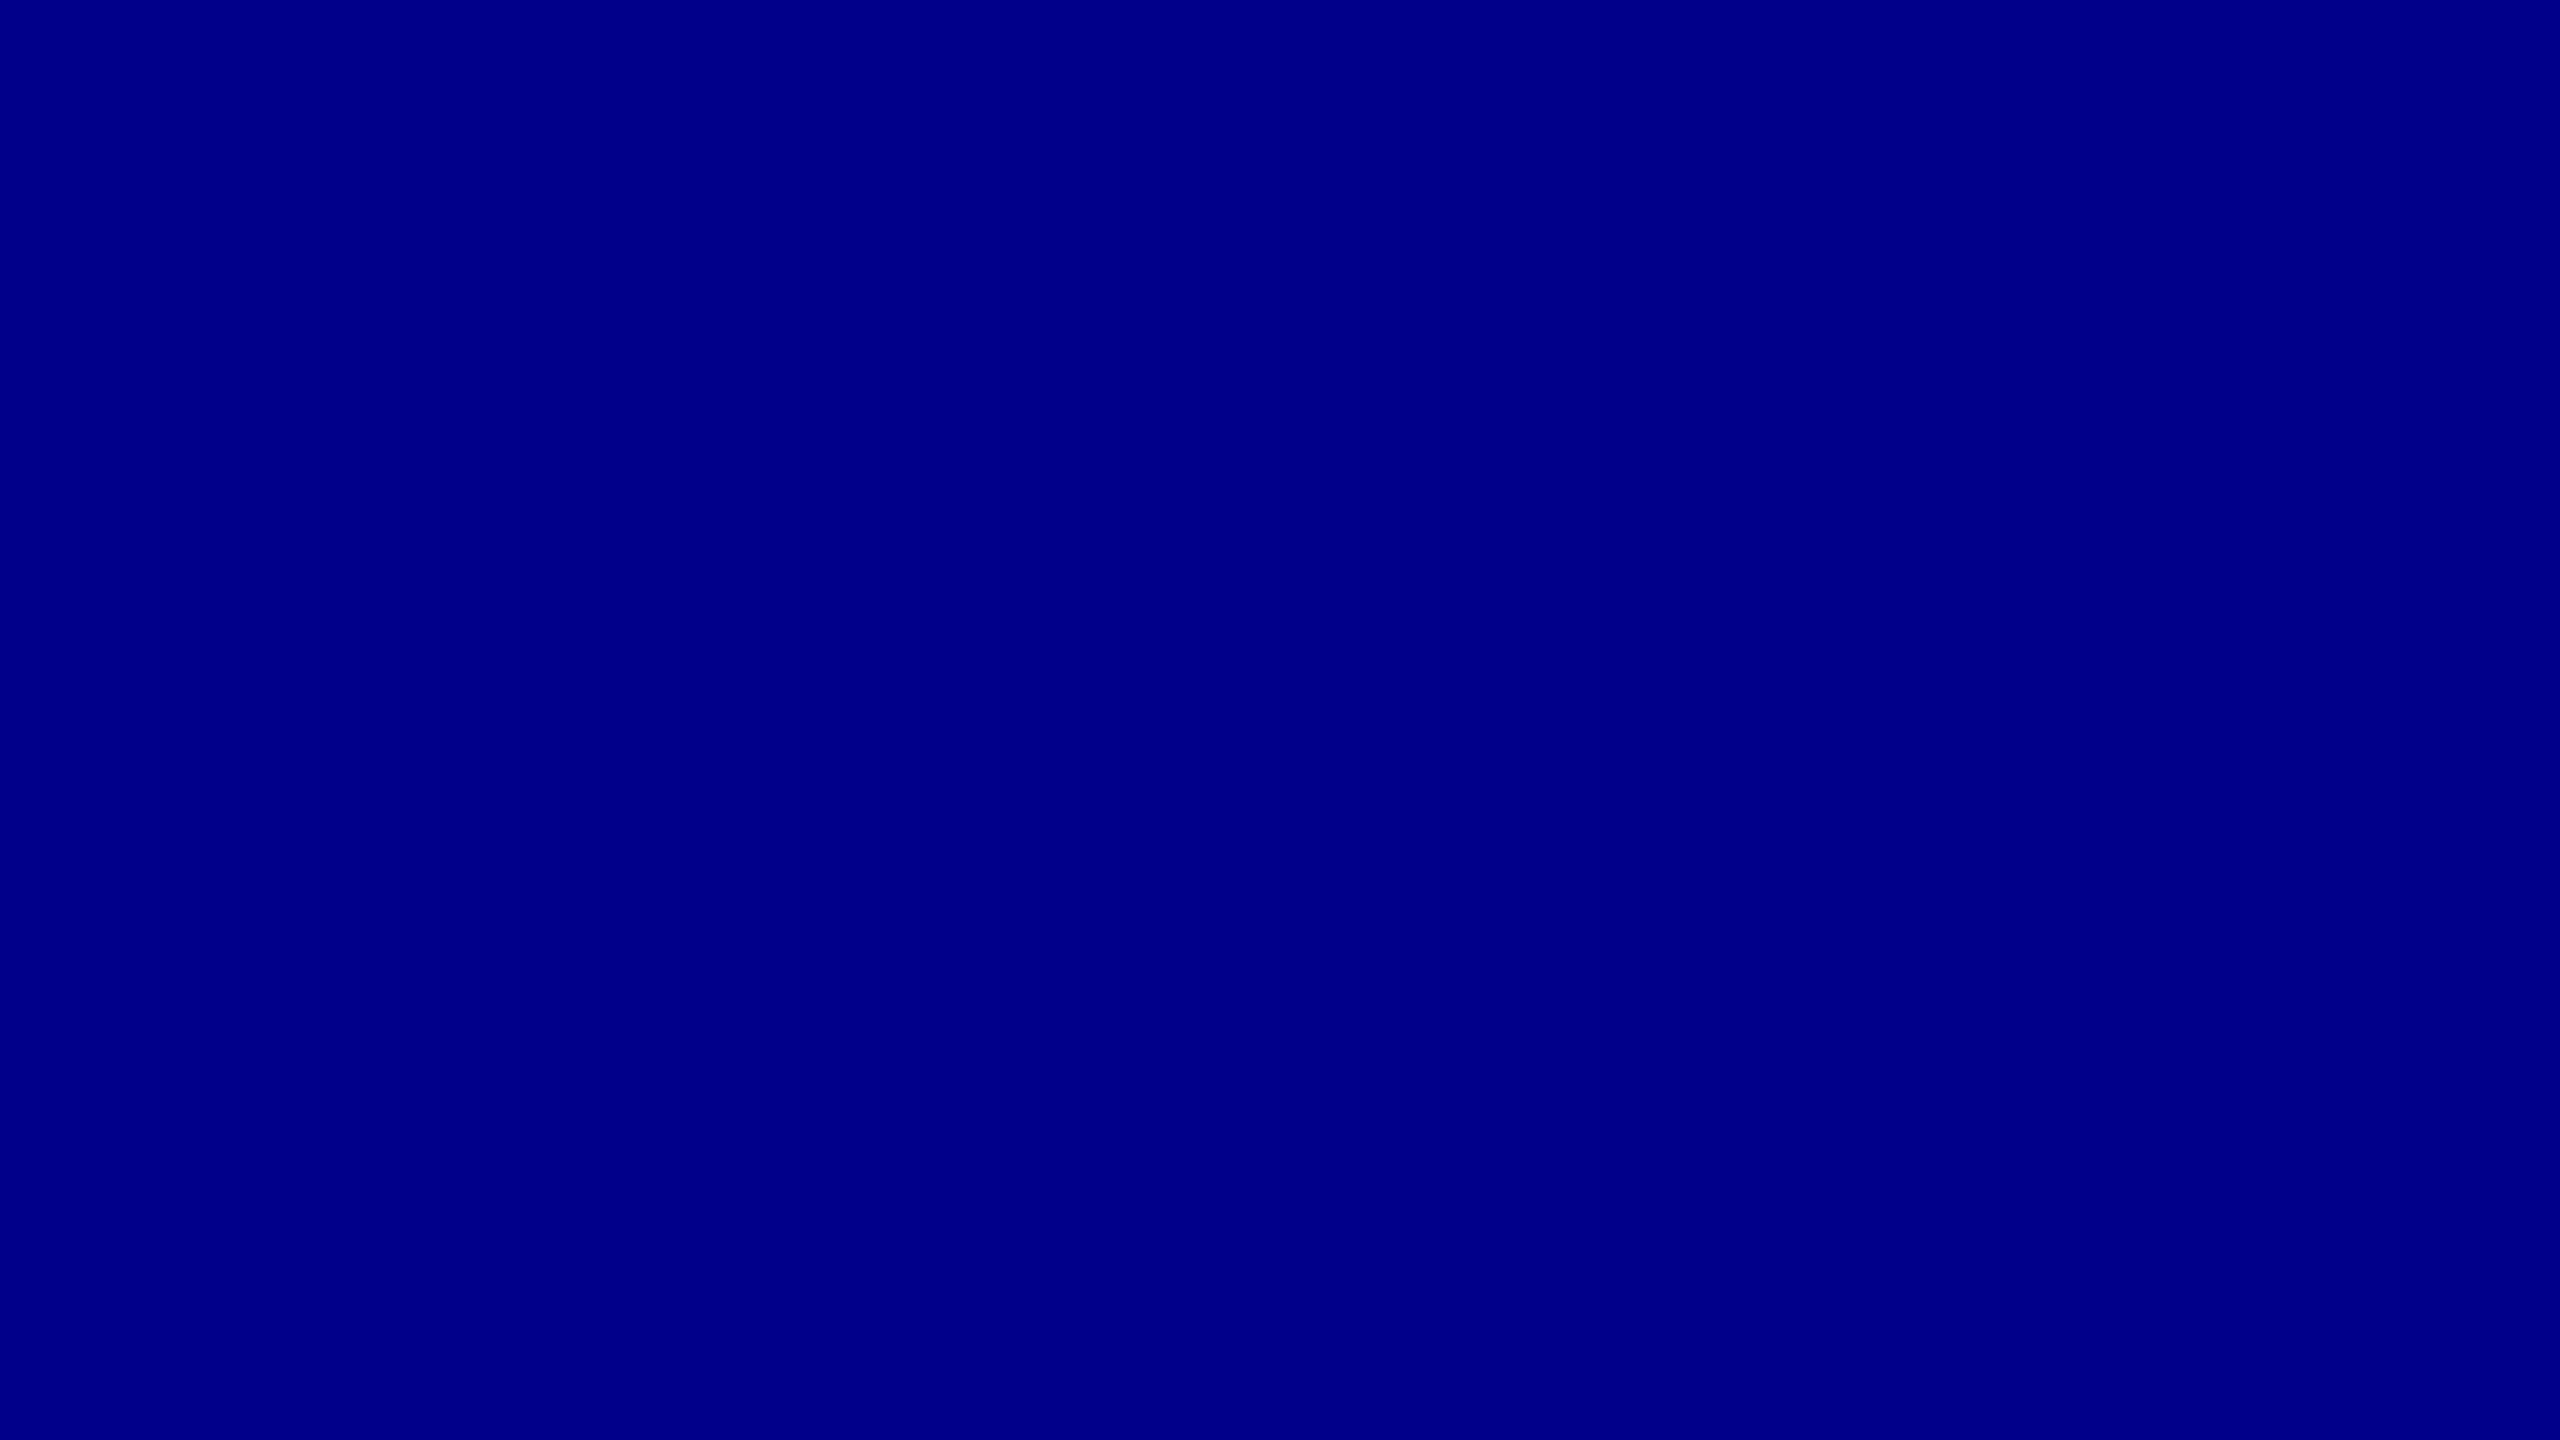 solidbackgroundscomimages2560x14402560x1440 dark blue 2560x1440